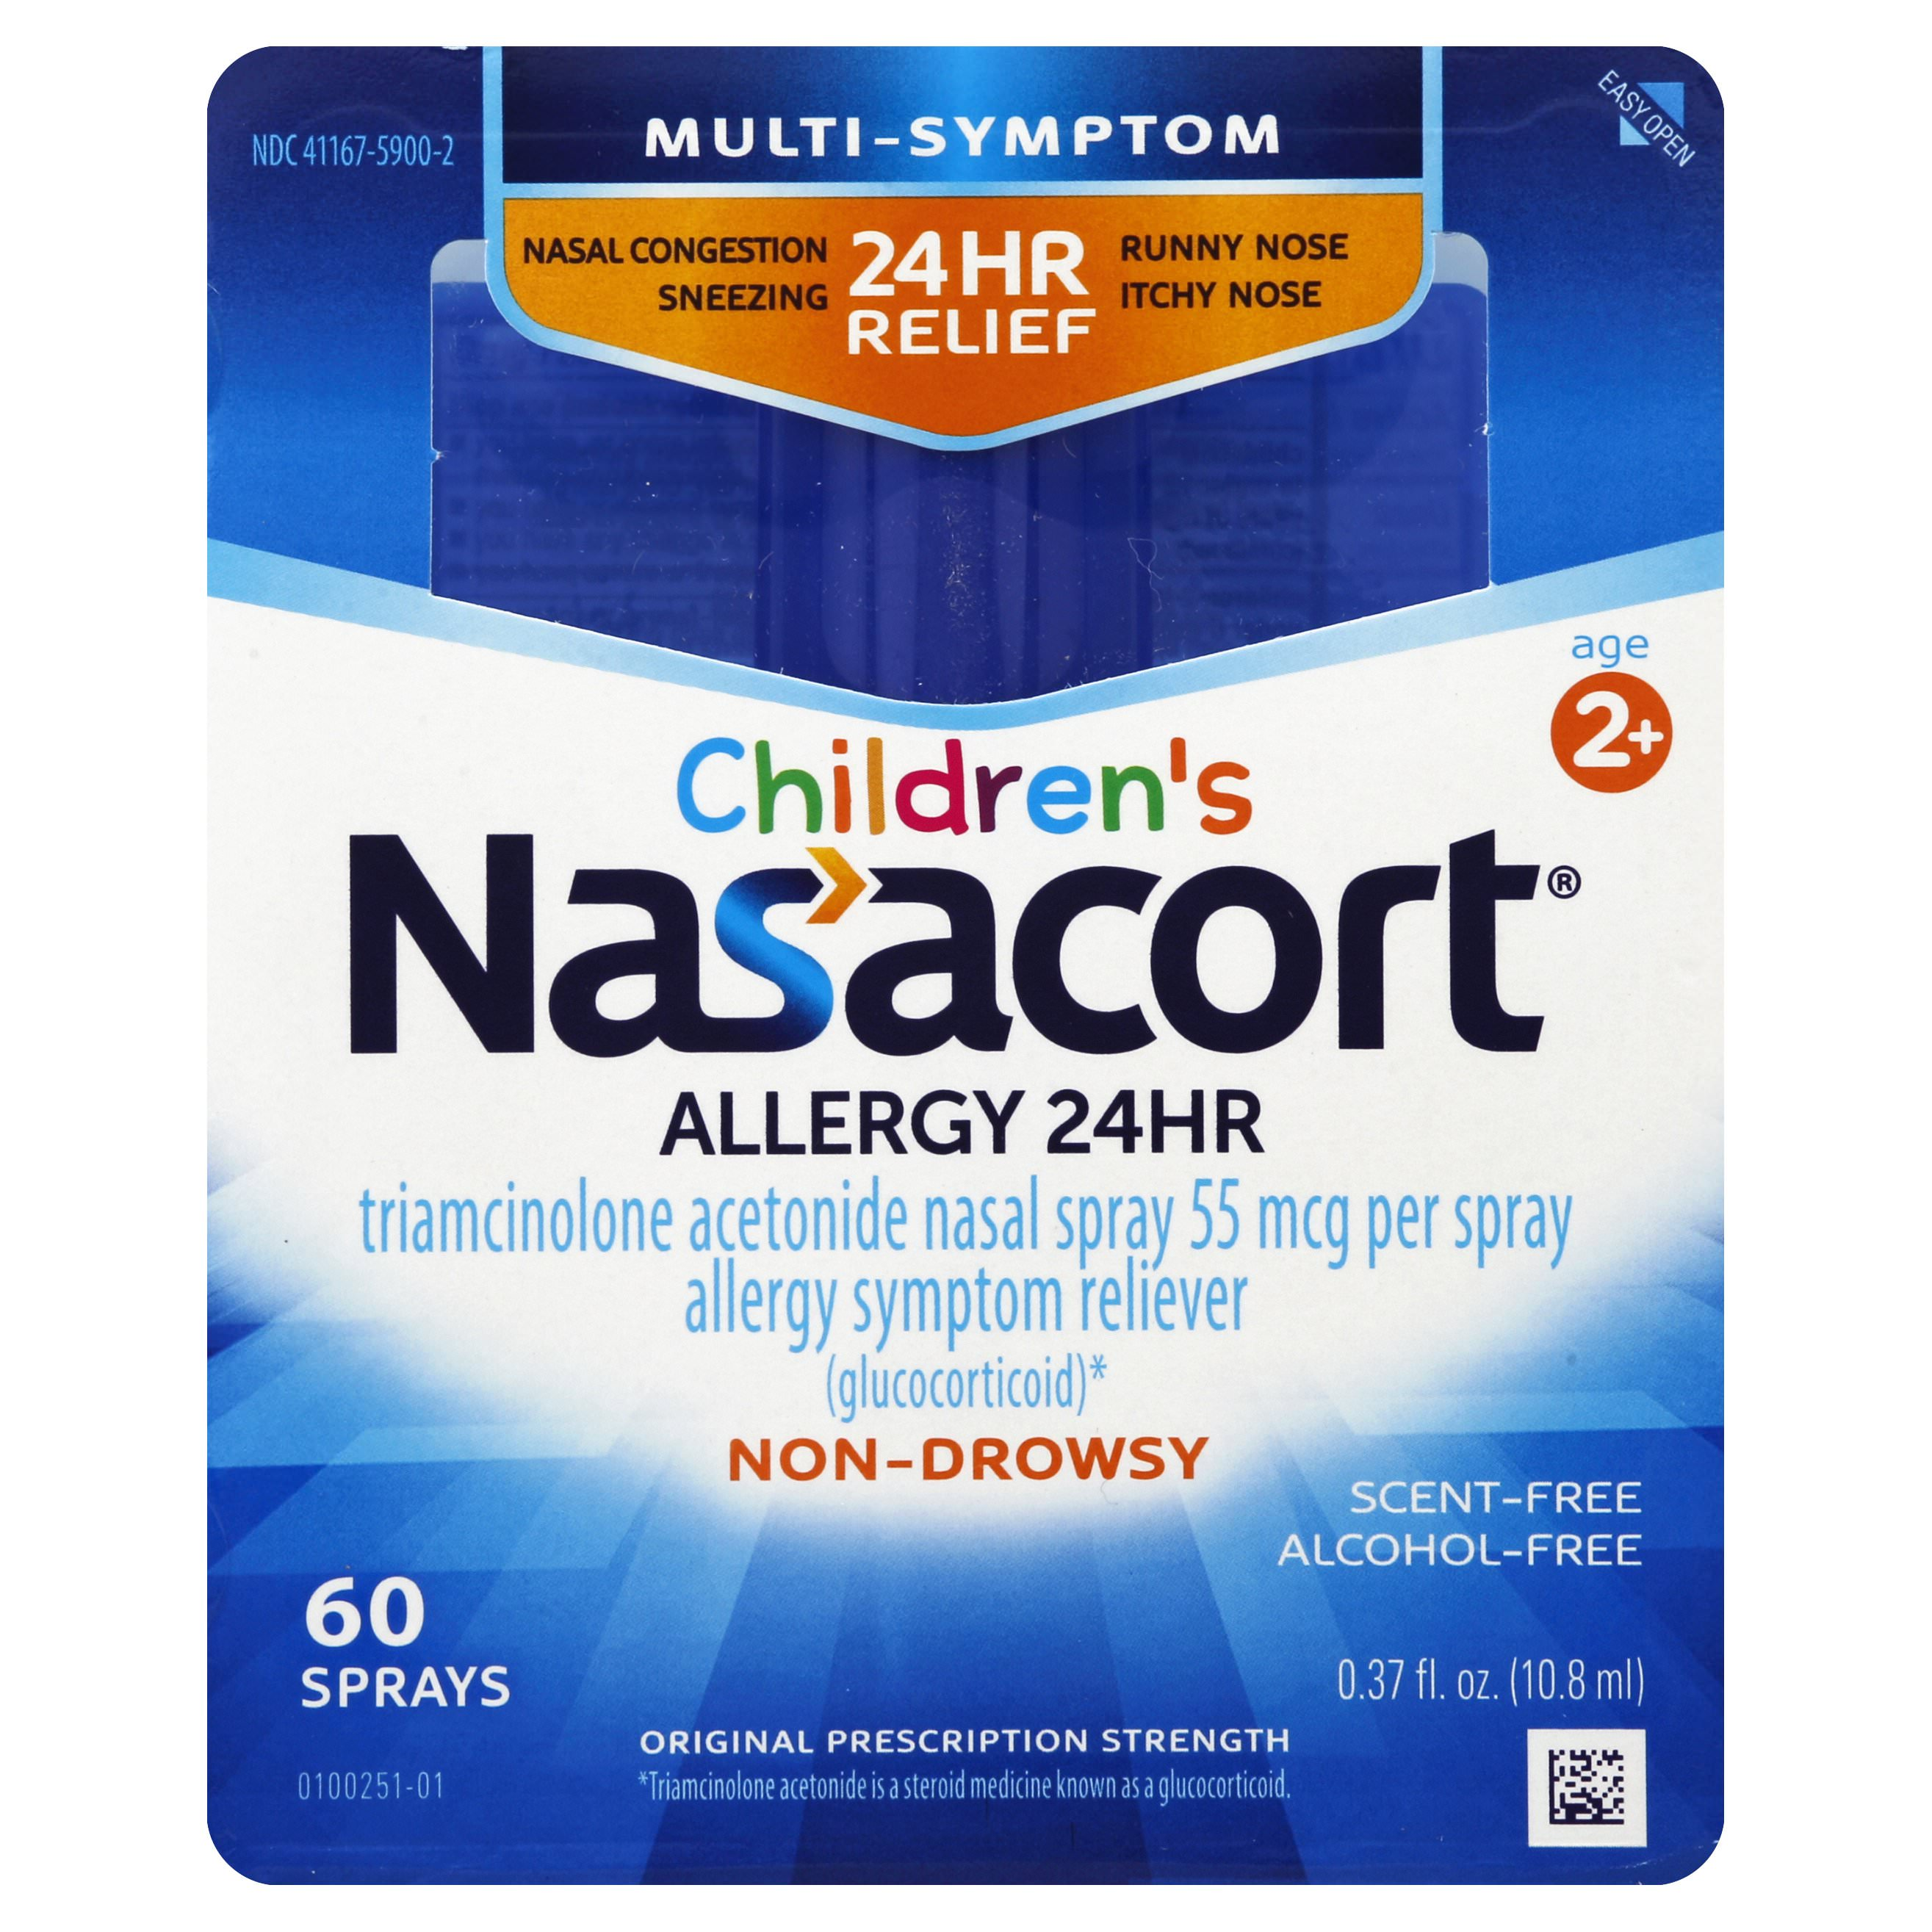 Nasacort Children's Multi-Symptom 24hr Nasal Allergy Relief Spray,60ct